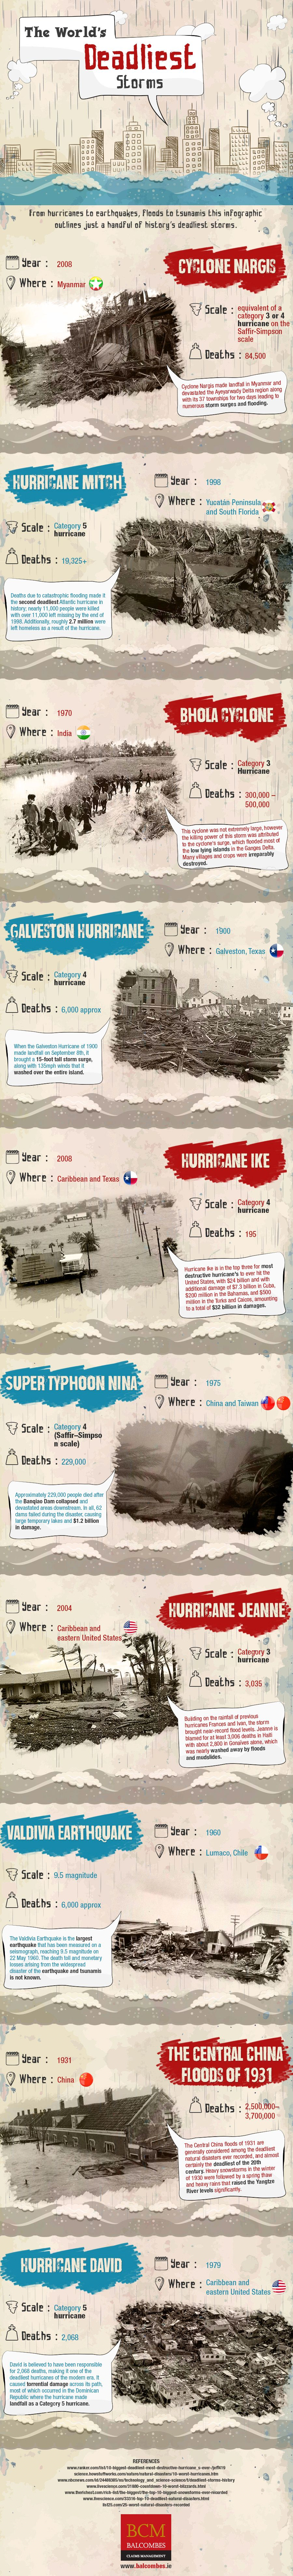 World's Deadiest Storms InfoGraphic